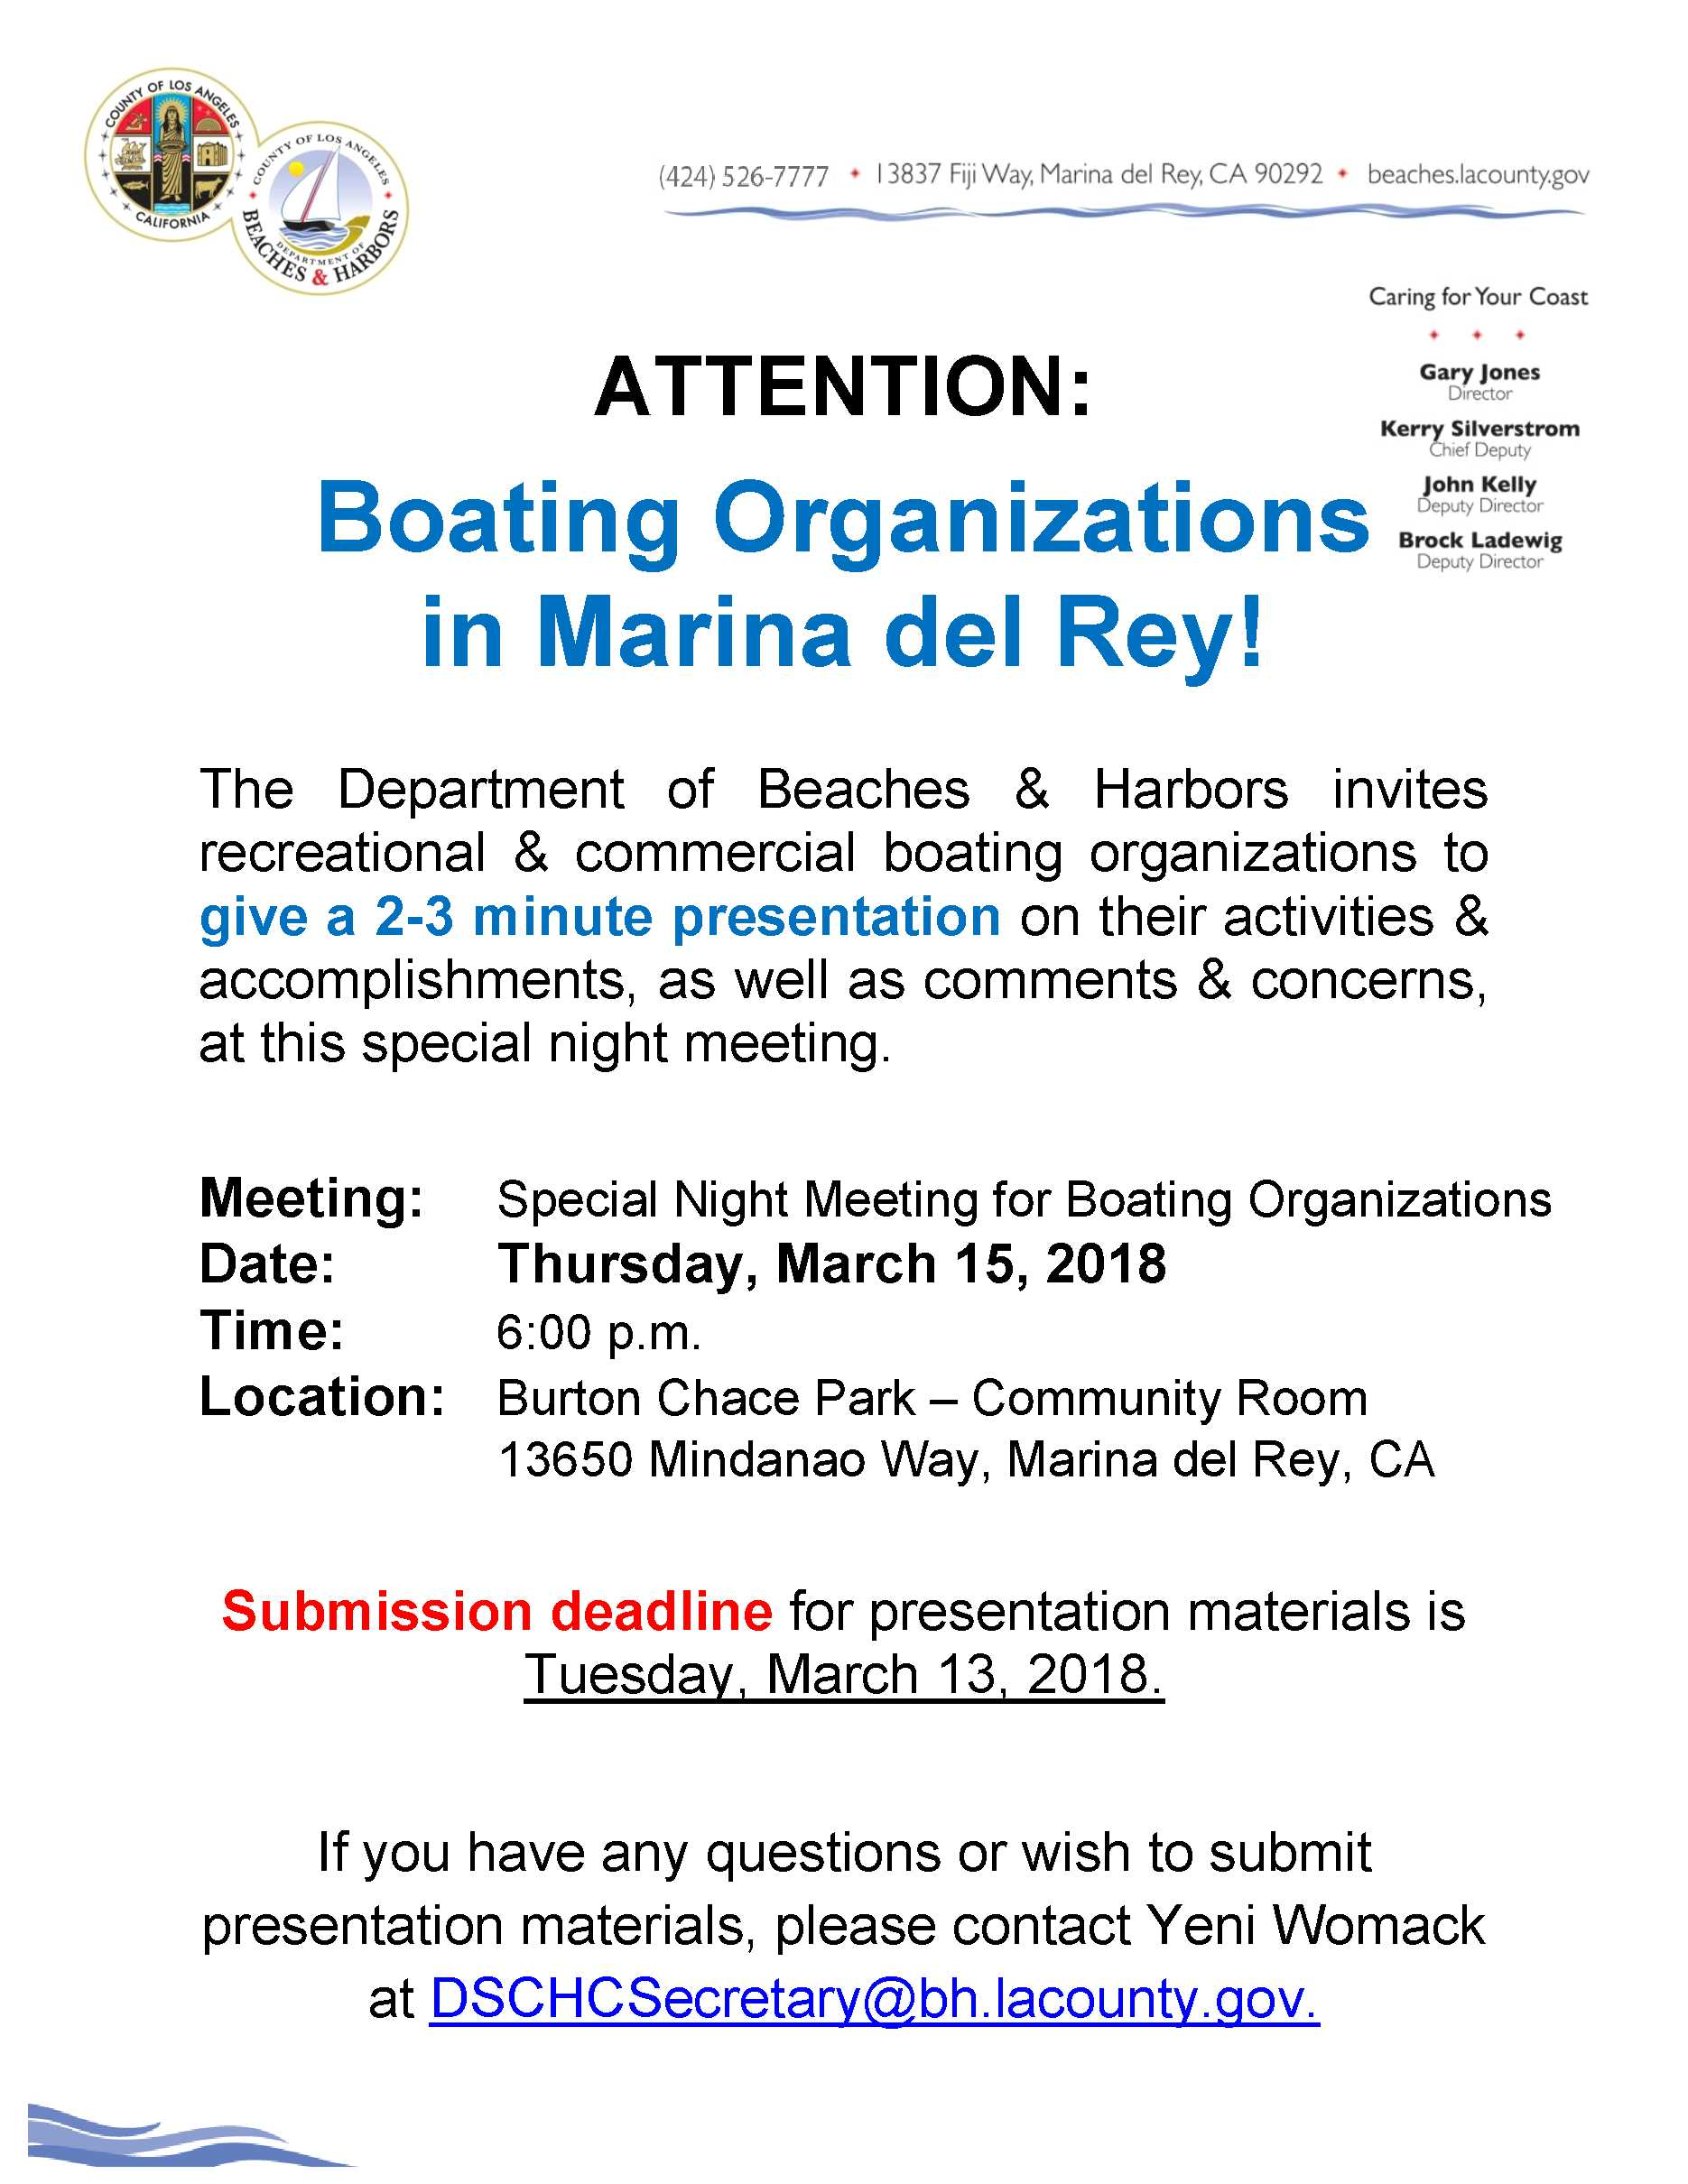 2018 Special Boaters Night Meeting Notice